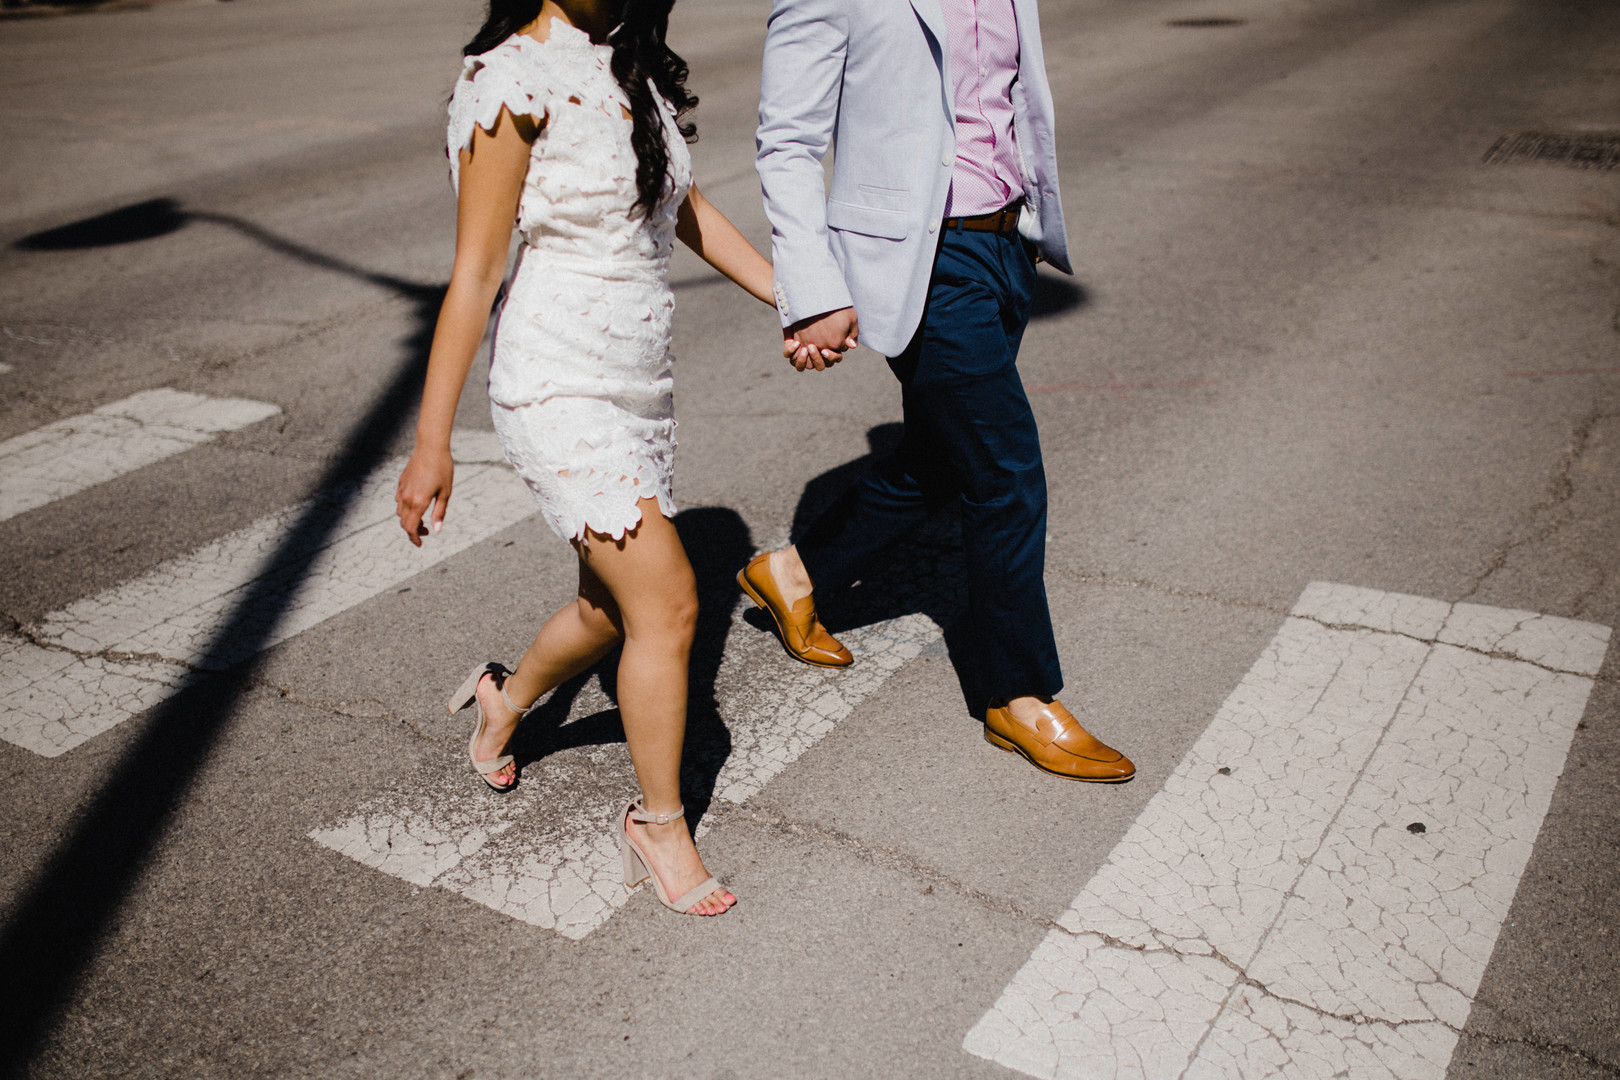 Surprise downtown Chicago engagement session captured by Robyn & Finch Photography. Find more wedding engagement and proposal ideas at CHItheeWED.com!